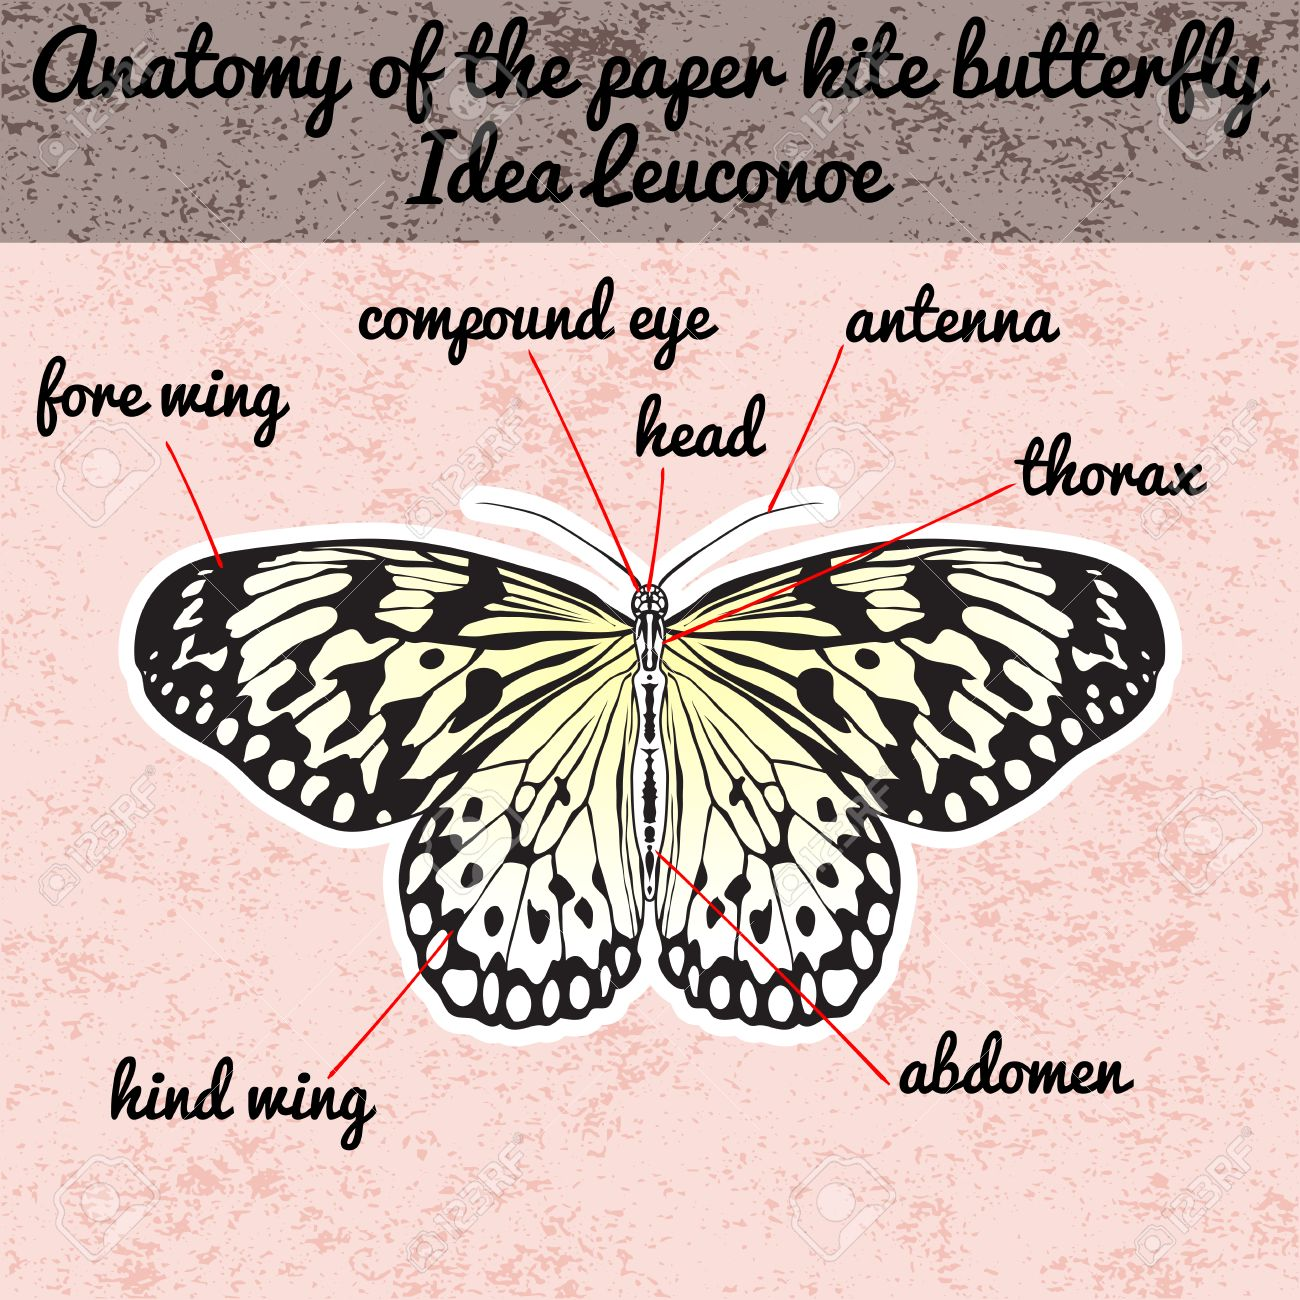 Insect anatomy. Sticker Butterfly Idea Leuconoe. Rice Paper Kite...